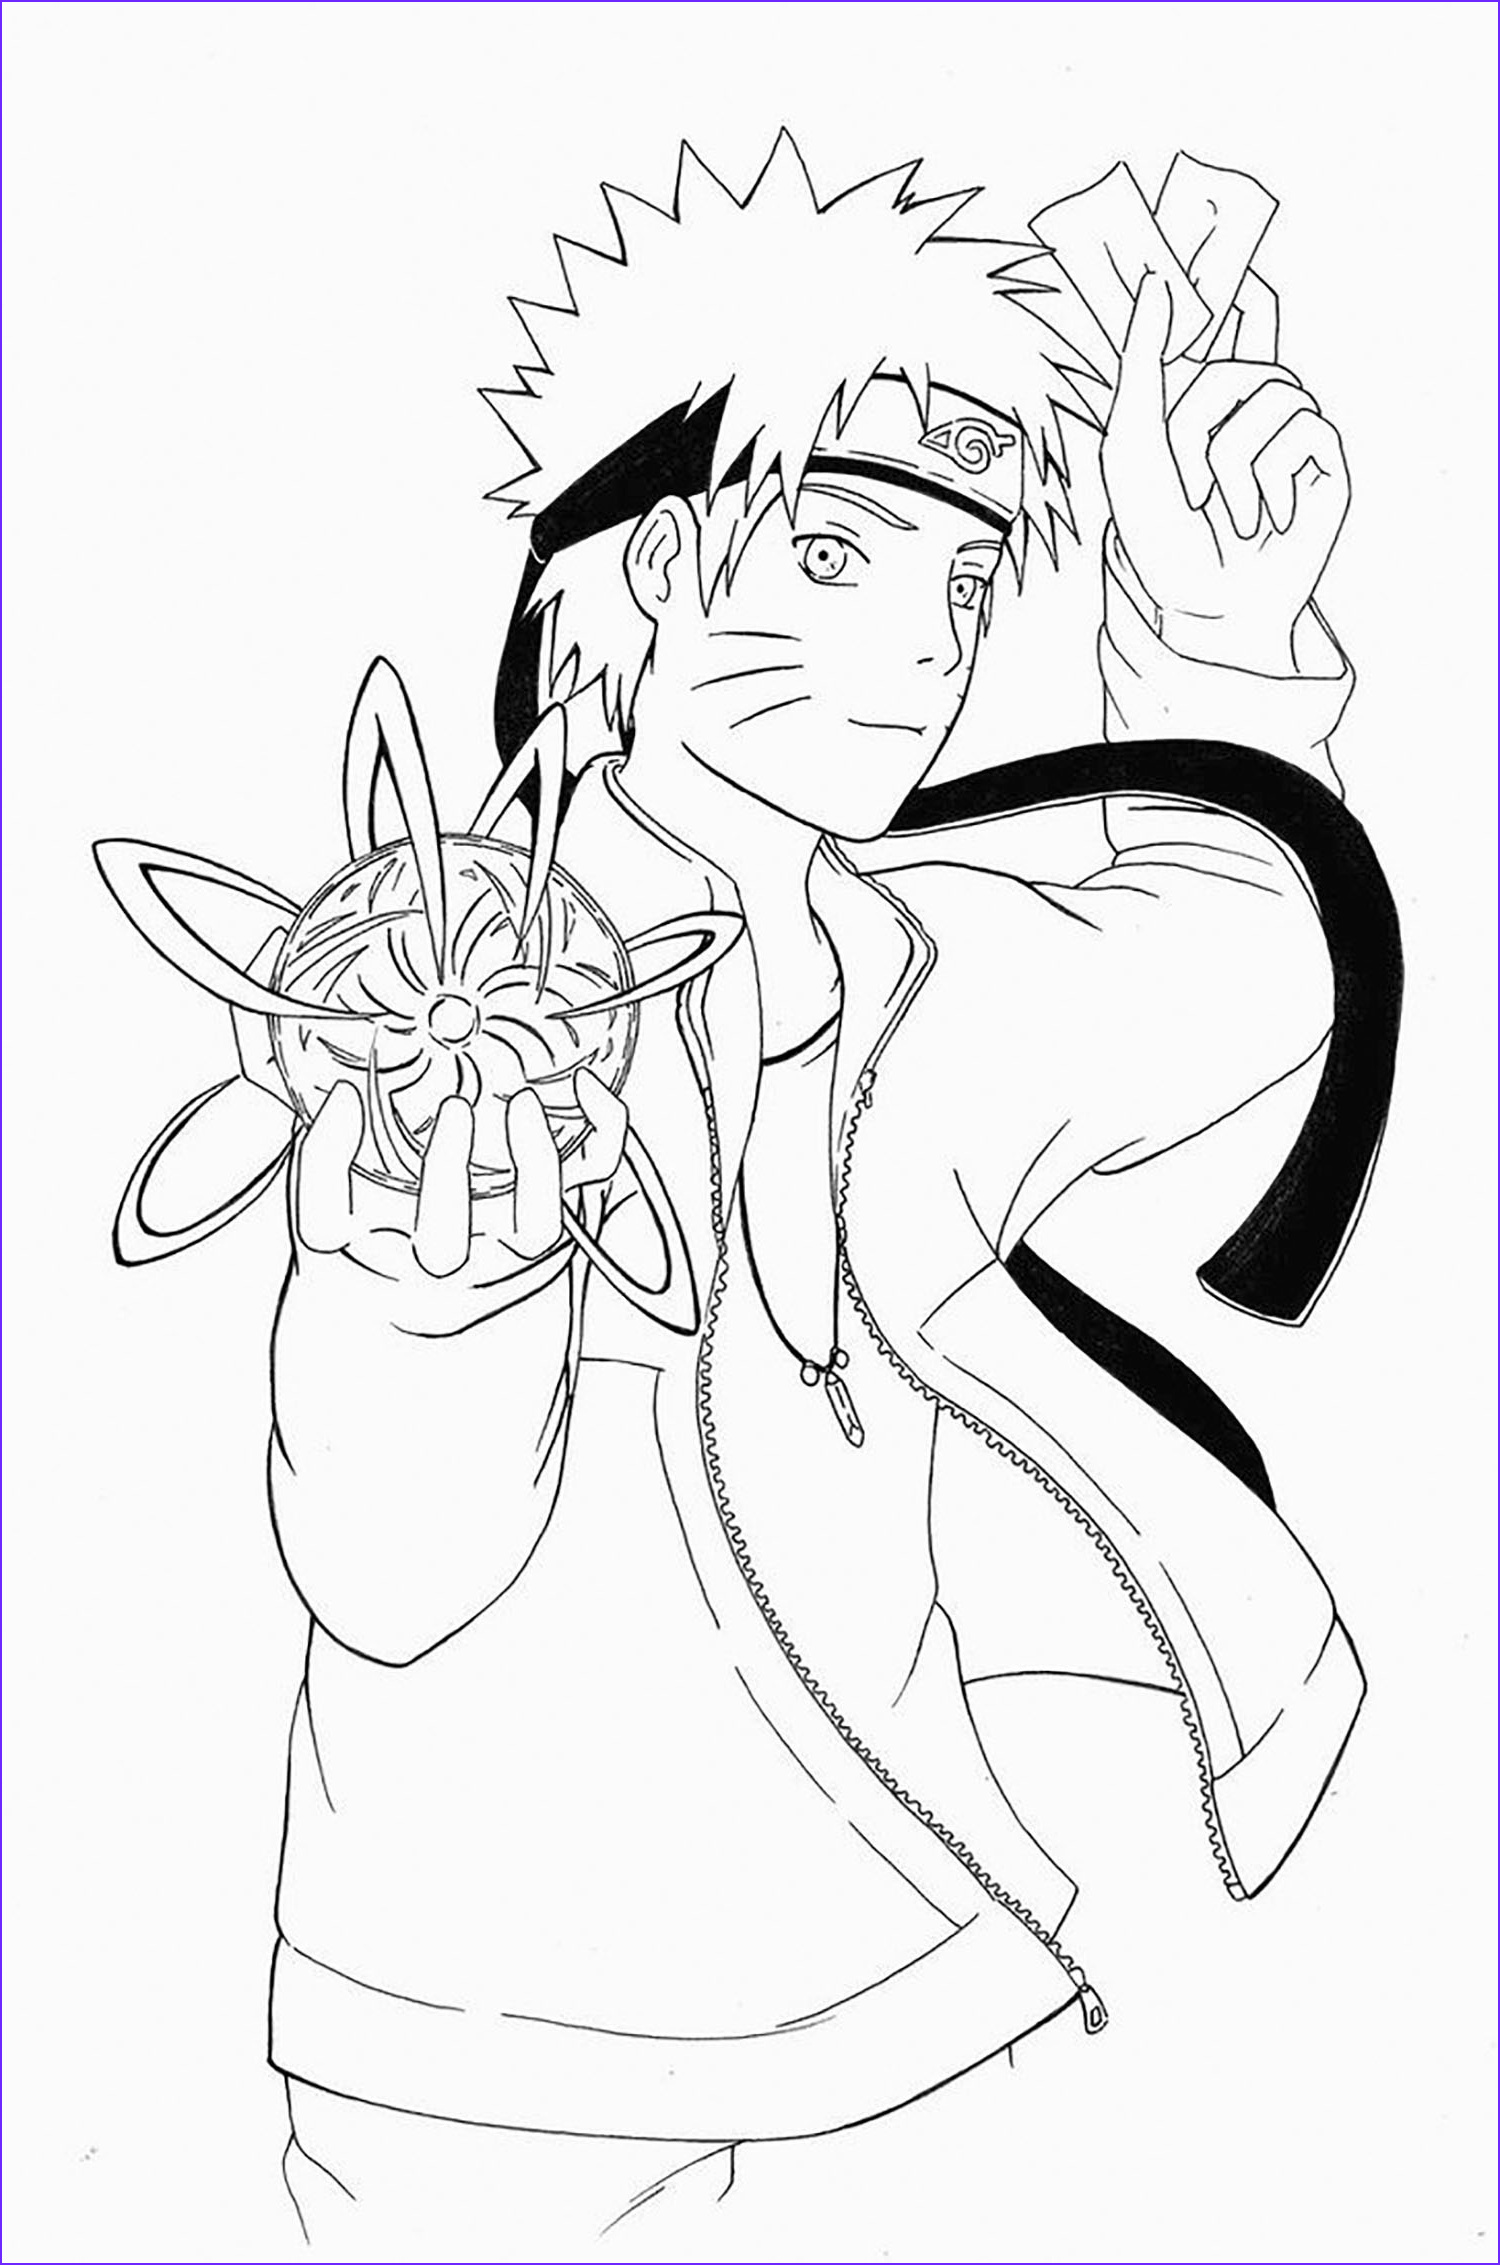 image=naruto coloring pages for children naruto 1